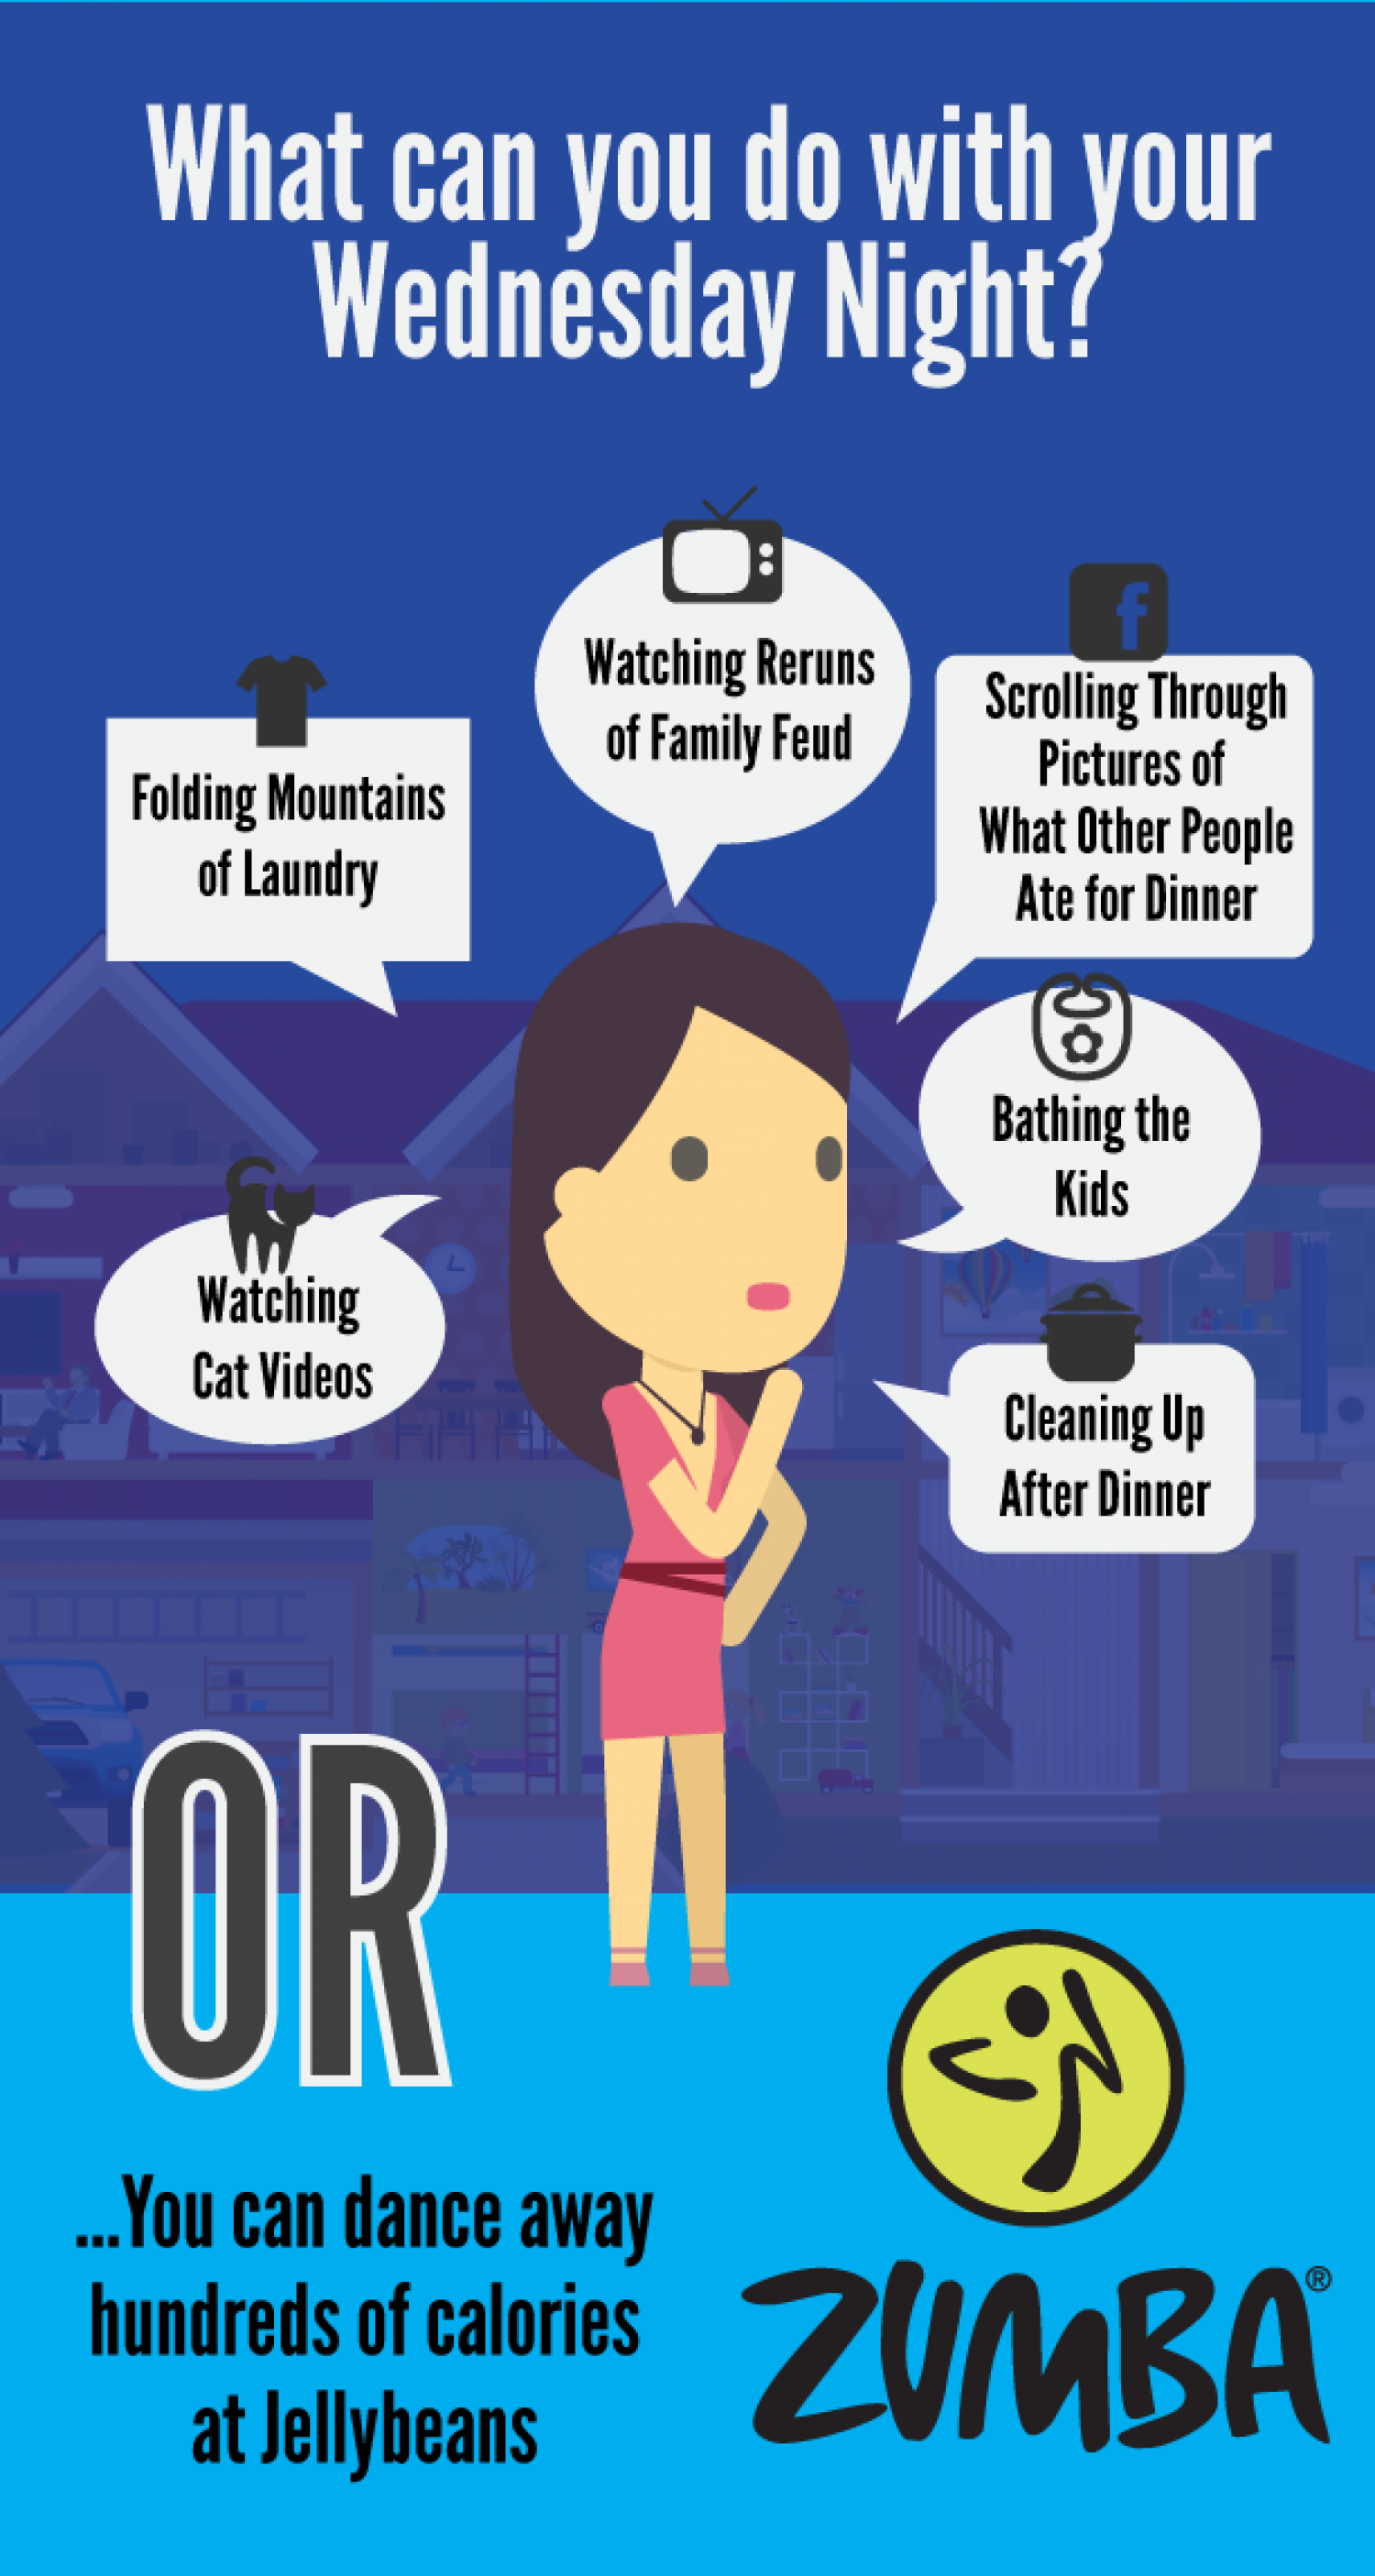 What should you do Wednesday night? Infographic